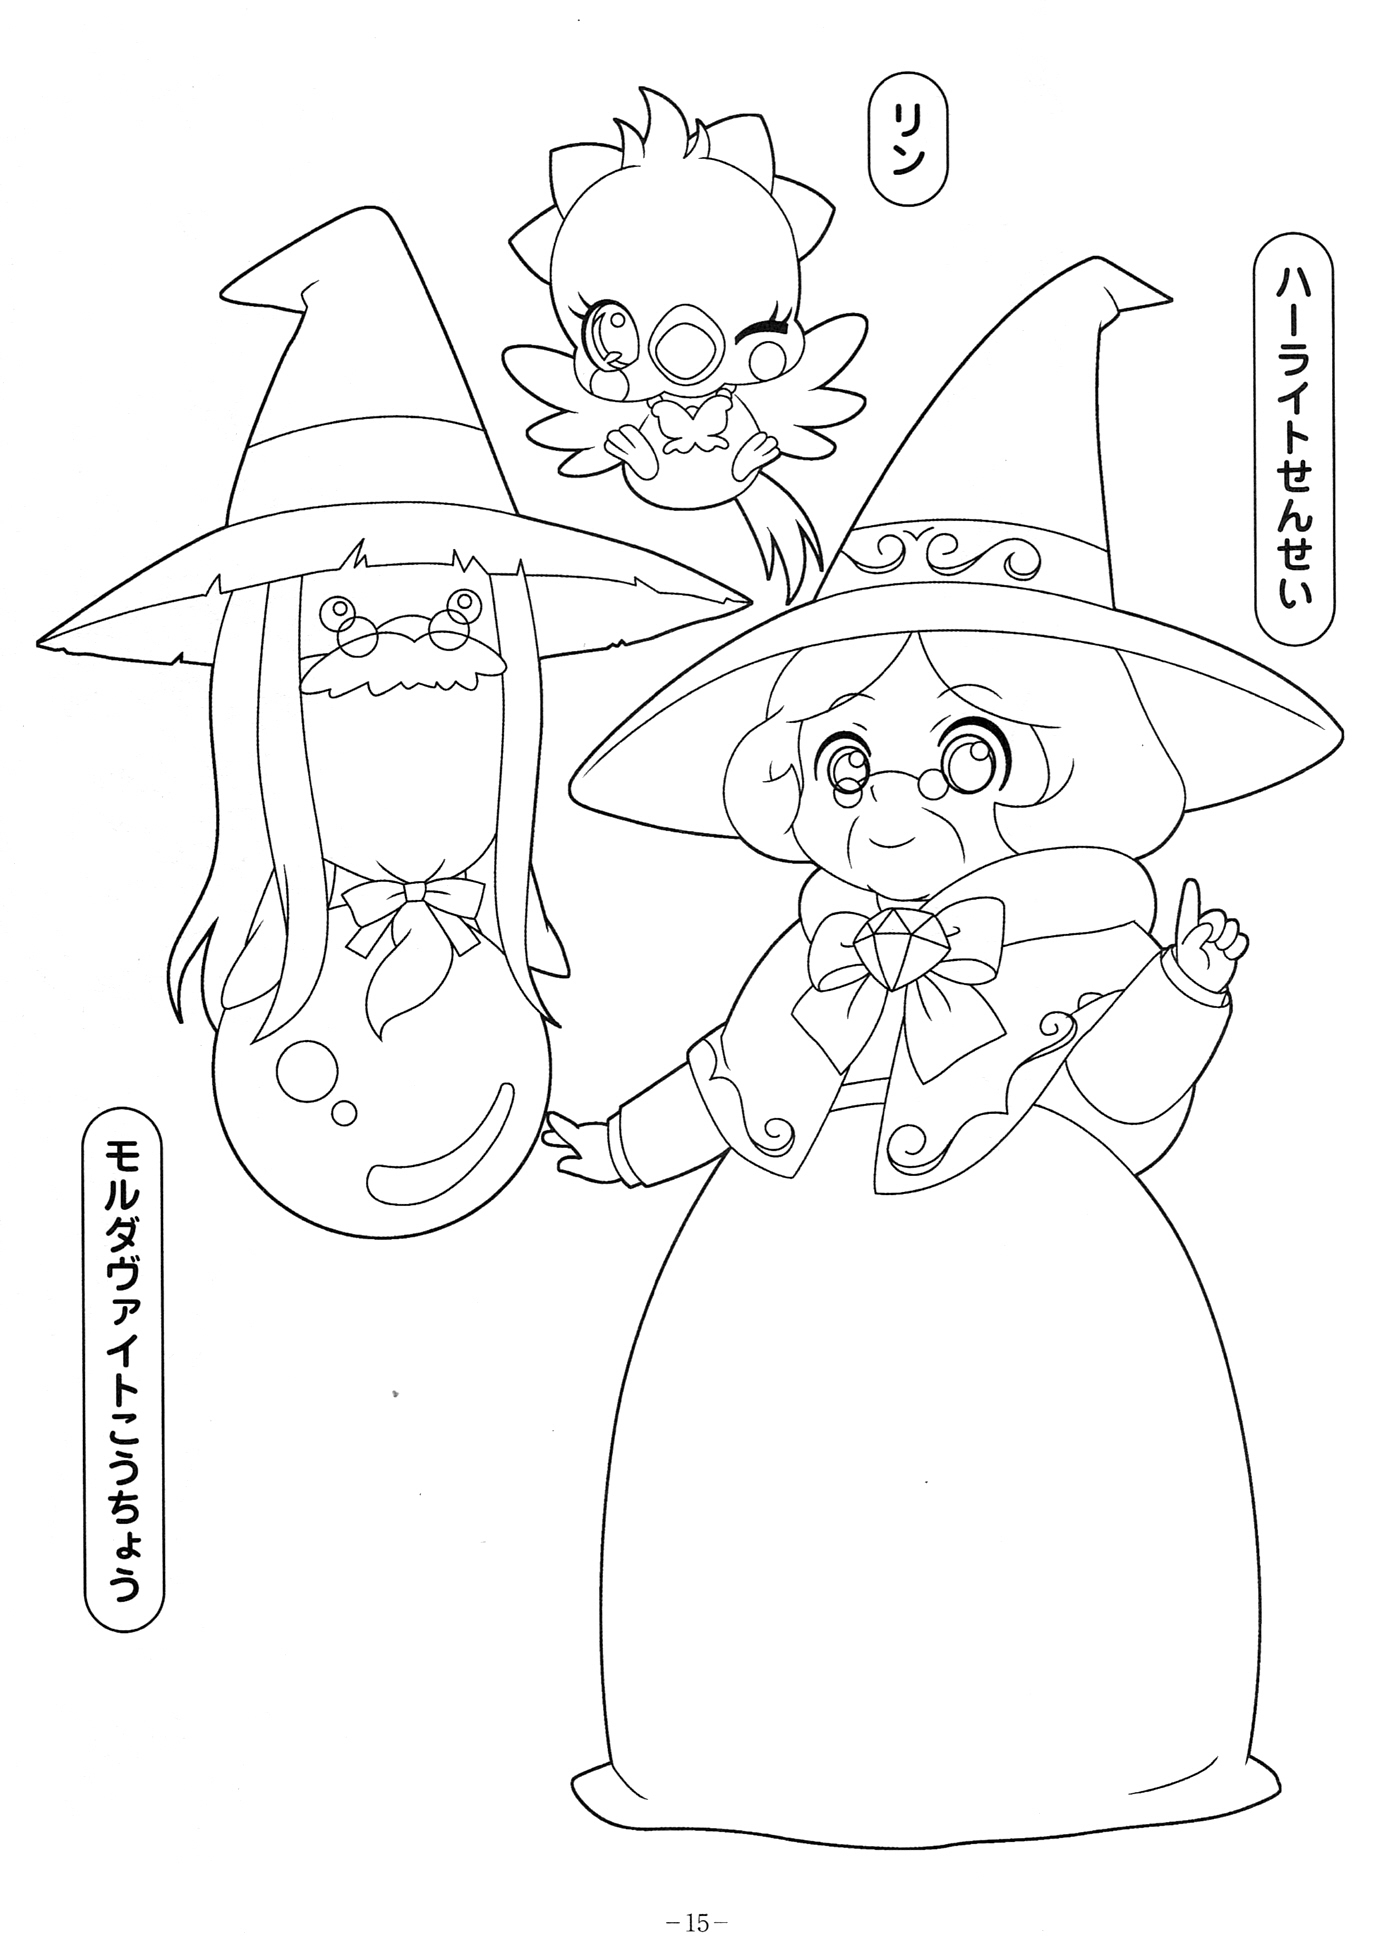 jewel coloring pages - jewel pet colouring pages sketch coloring page